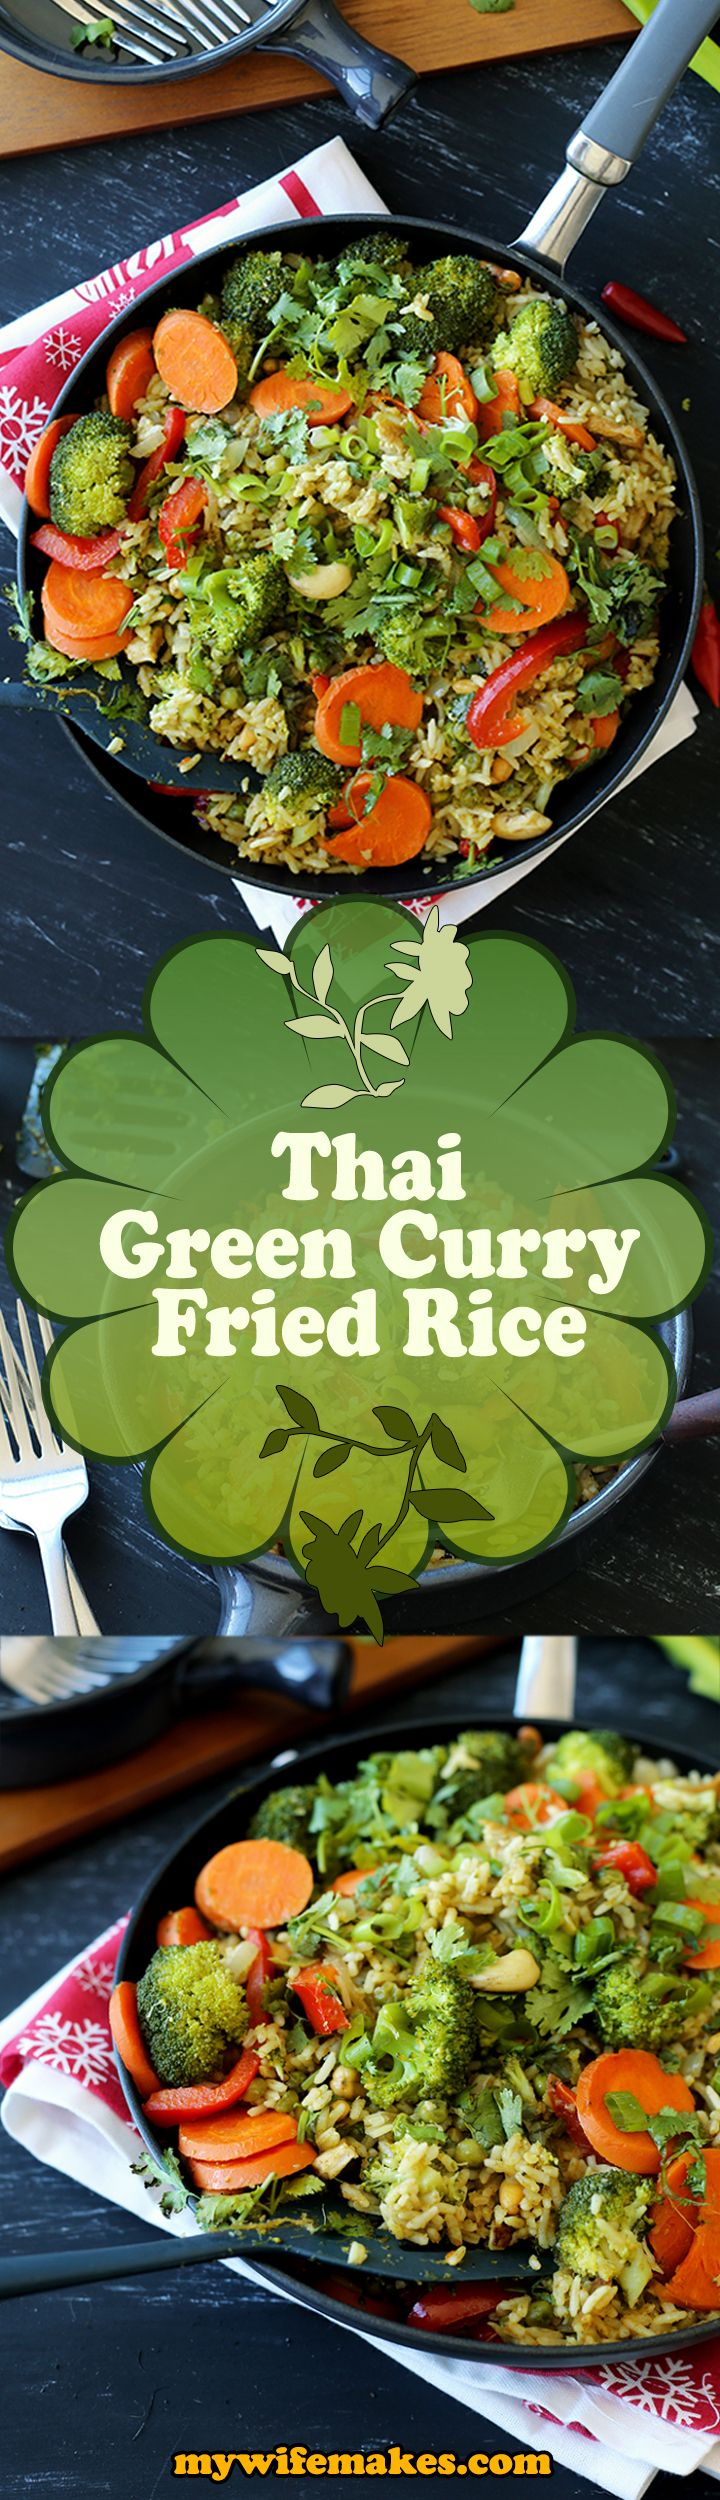 Simple and delicious Vegan Thai Green Curry Fried Rice recipe. A breeze to prepare, packed with healthy taste (very little oil, uses fresh ingredients).